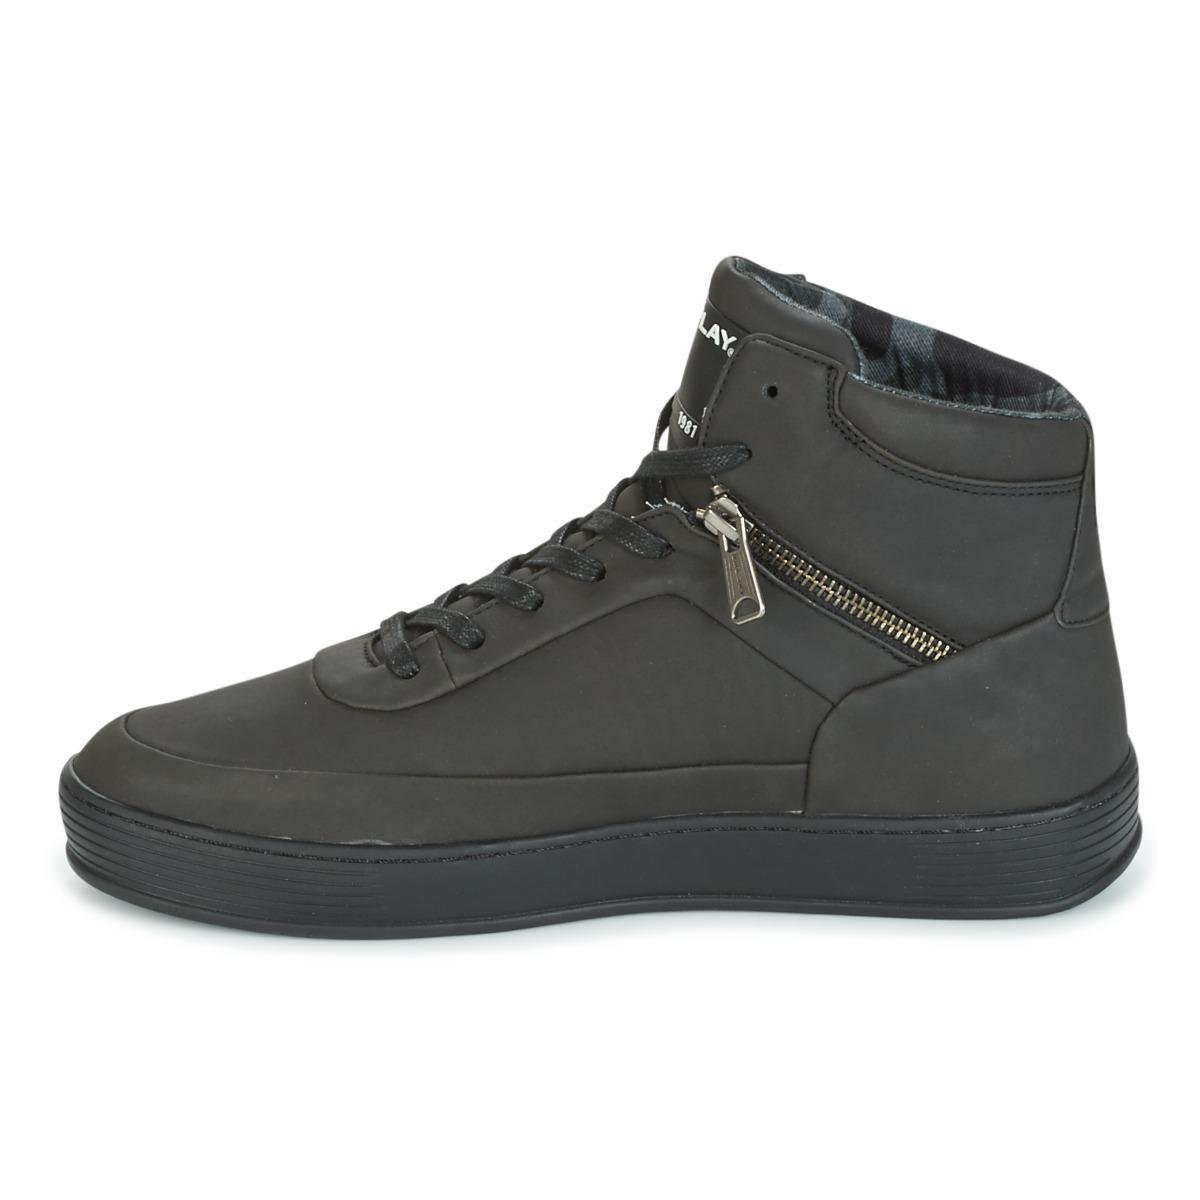 Replay Take Men's Shoes (high-top Trainers) In Black for Men